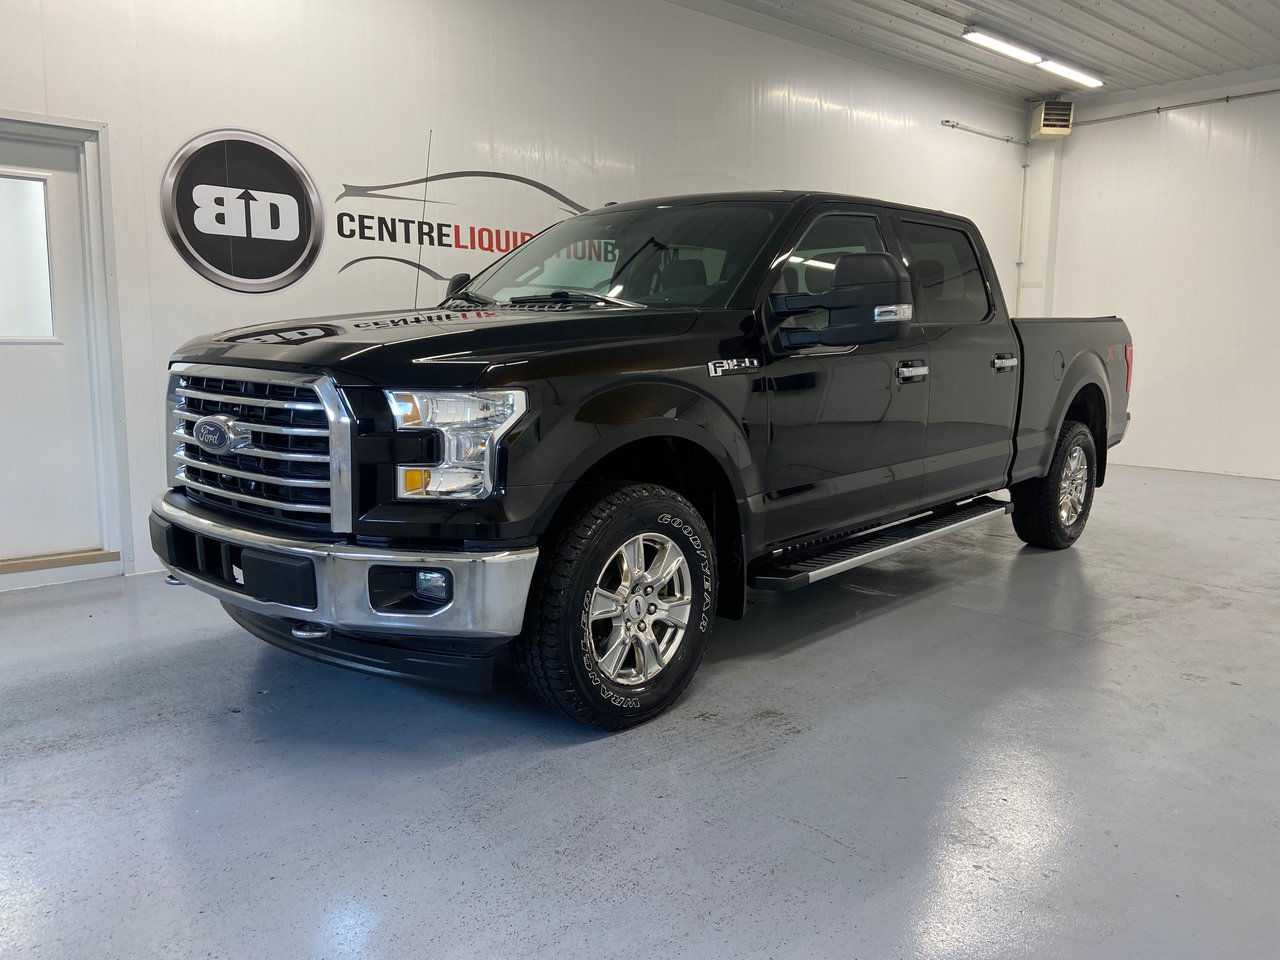 Ford F-150 2017 V8 5.0L XLT CREW CAB 4x4 HITCH MARCHE PIED